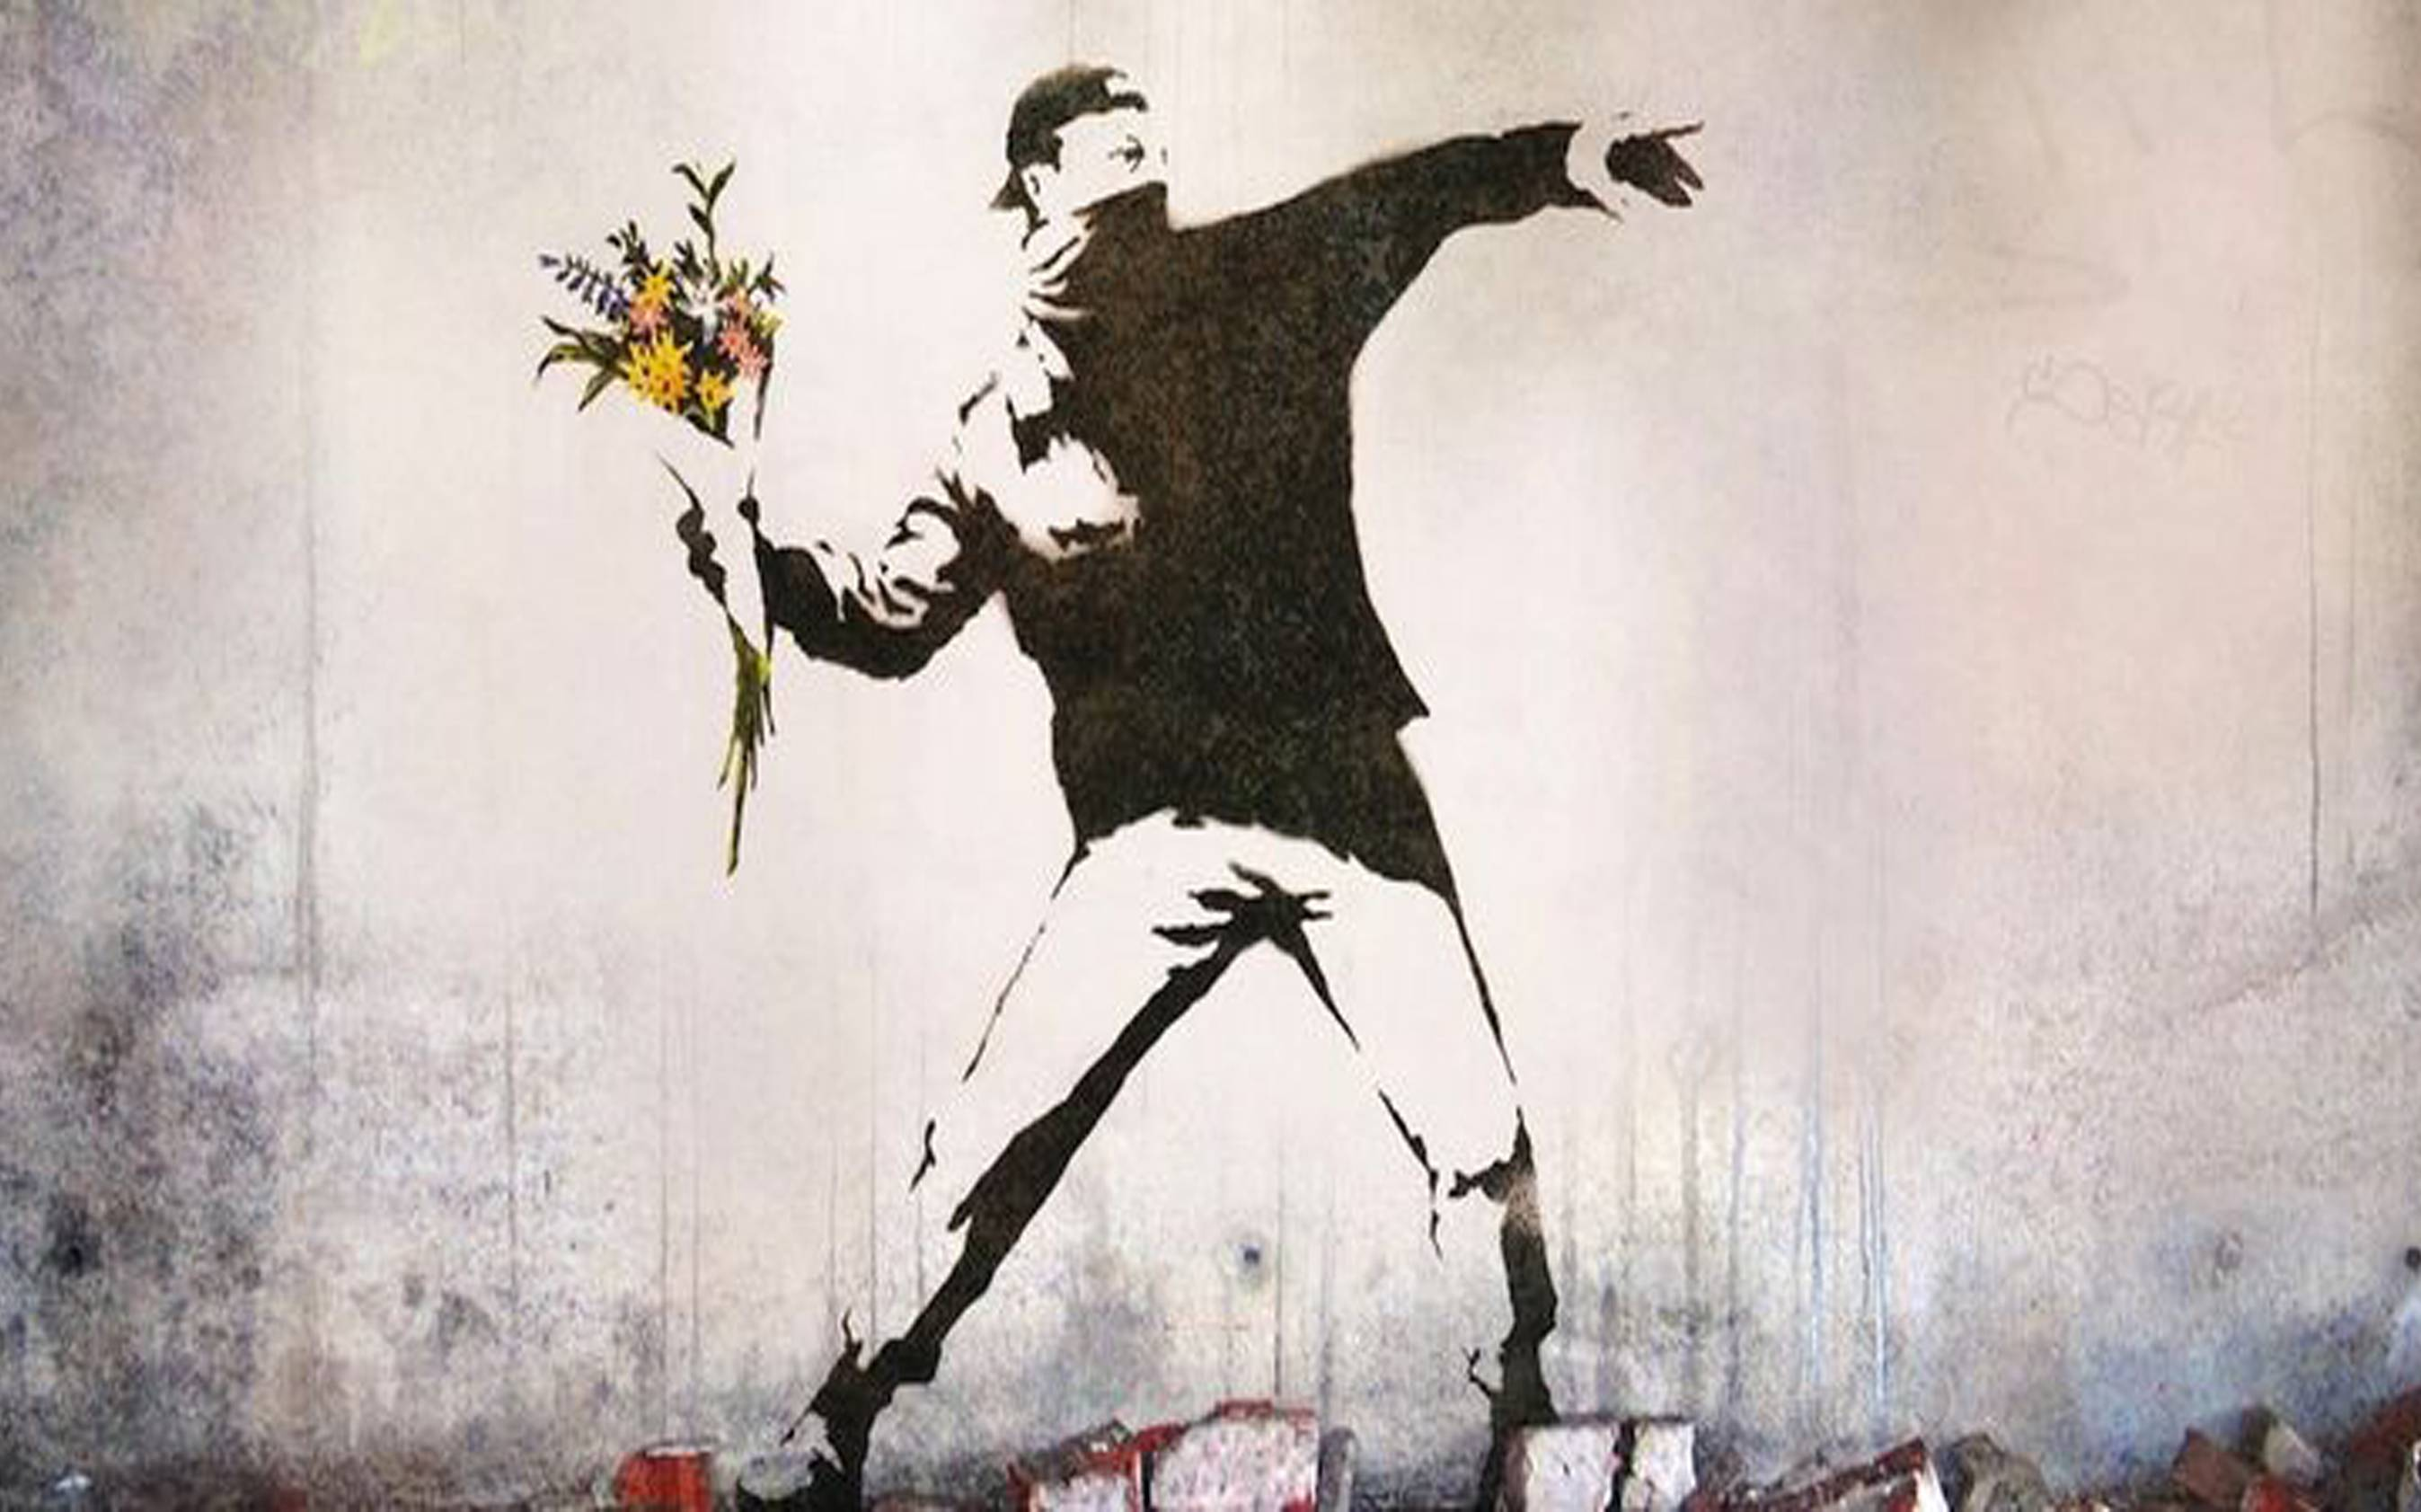 banksy instagrambanksy wall and piece, banksy works, banksy instagram, banksy art, banksy hotel, banksy amsterdam, banksy face, banksy massive attack, banksy перевод, banksy dismaland, banksy london, banksy wiki, banksy twitter, banksy israel, banksy panda, banksy new york, banksy wallpaper, banksy does new york, banksy wall and piece pdf, banksy film